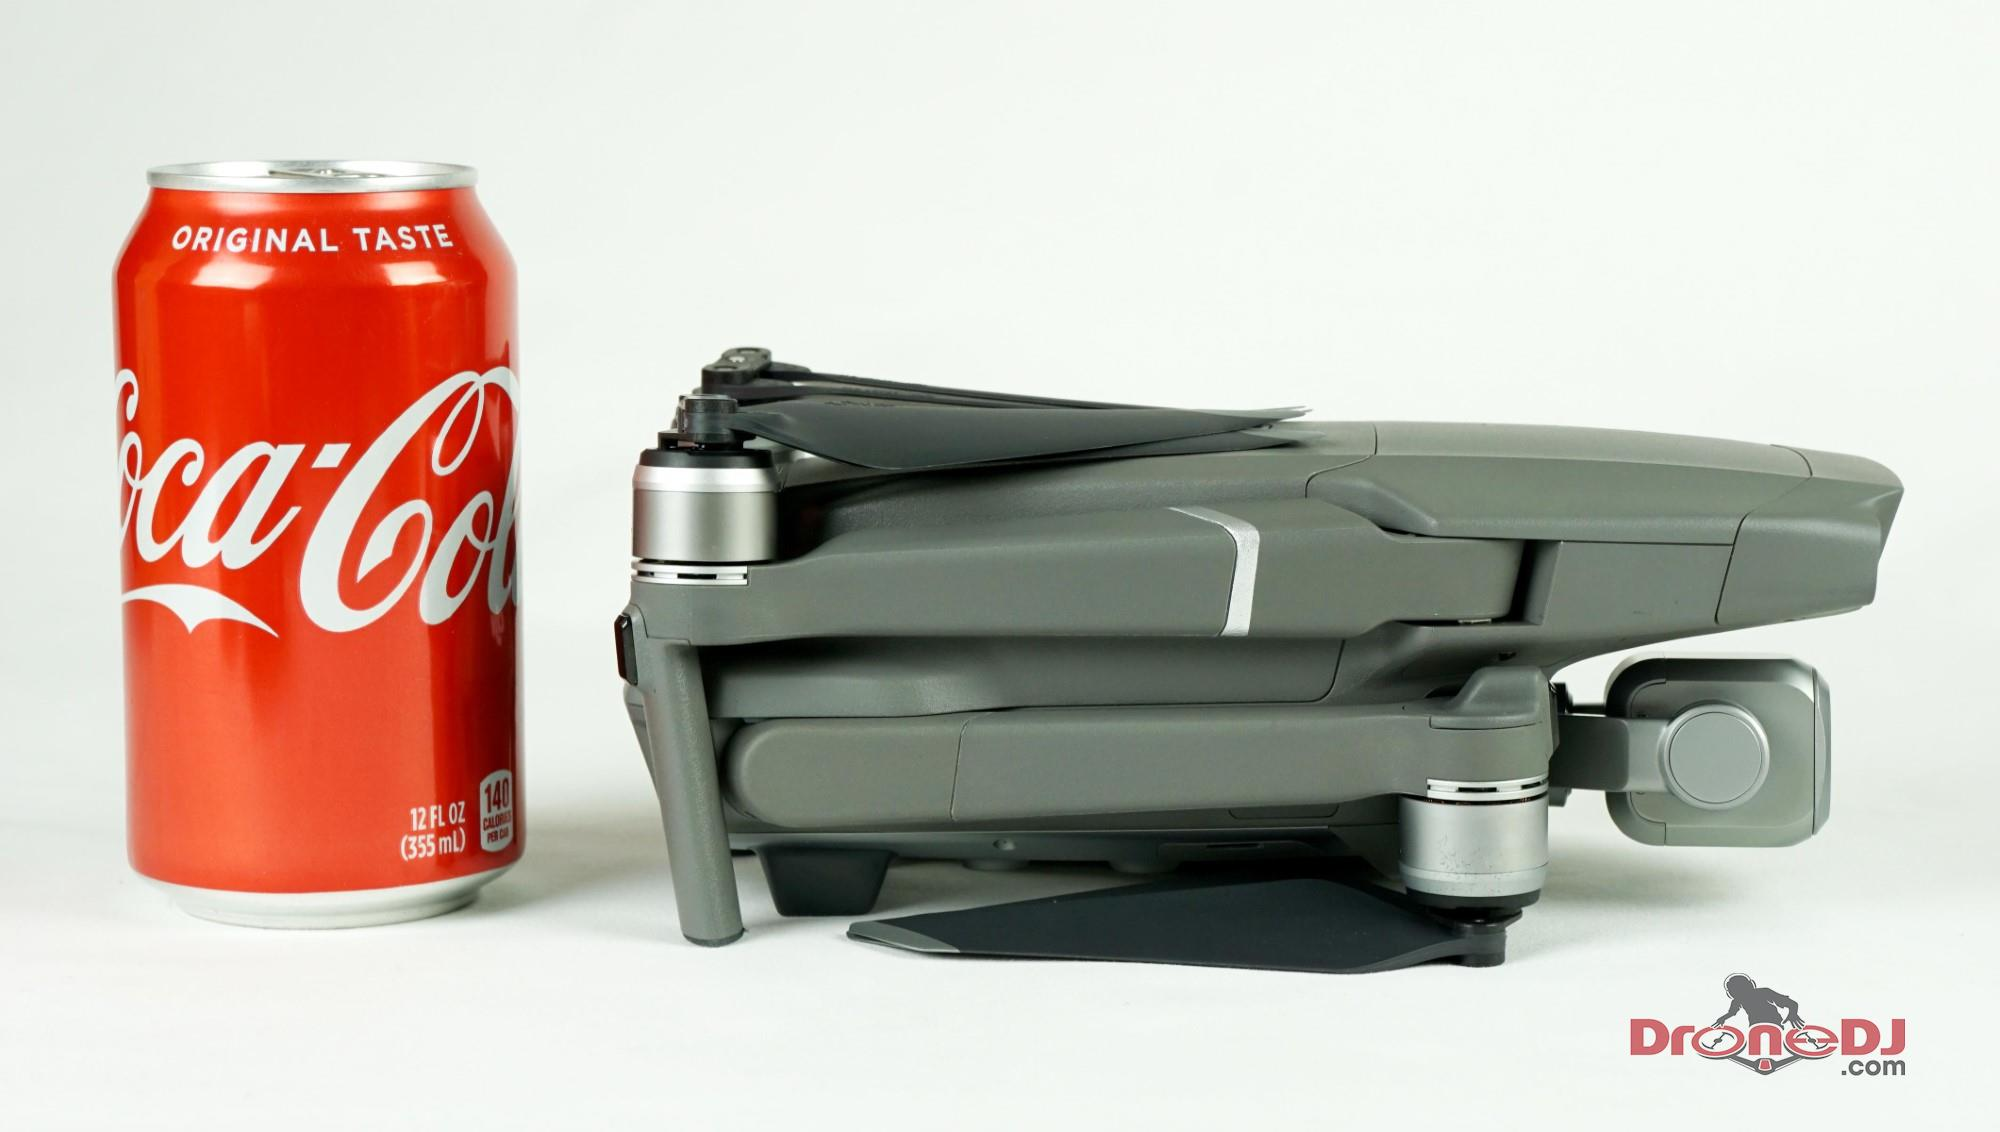 Mavic 2 Pro Side View with Coke can